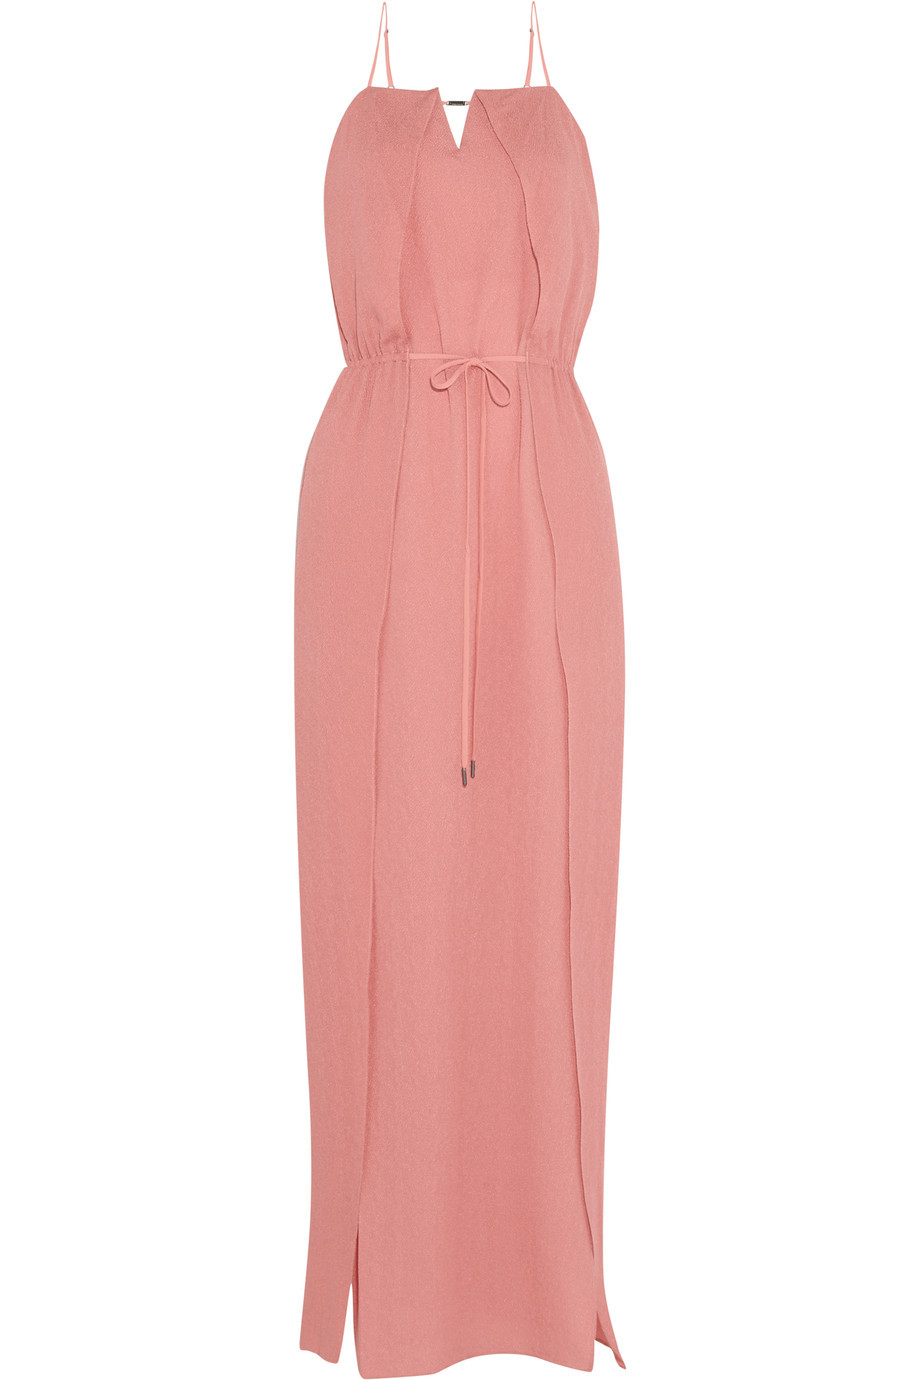 Hammered Silk Maxi Dress Antique Rose - sleeve style: spaghetti straps; fit: fitted at waist; pattern: plain; style: maxi dress; length: ankle length; hip detail: draws attention to hips; waist detail: belted waist/tie at waist/drawstring; predominant colour: pink; fibres: silk - 100%; occasions: occasion; sleeve length: sleeveless; texture group: silky - light; neckline: low square neck; pattern type: fabric; season: s/s 2016; wardrobe: event